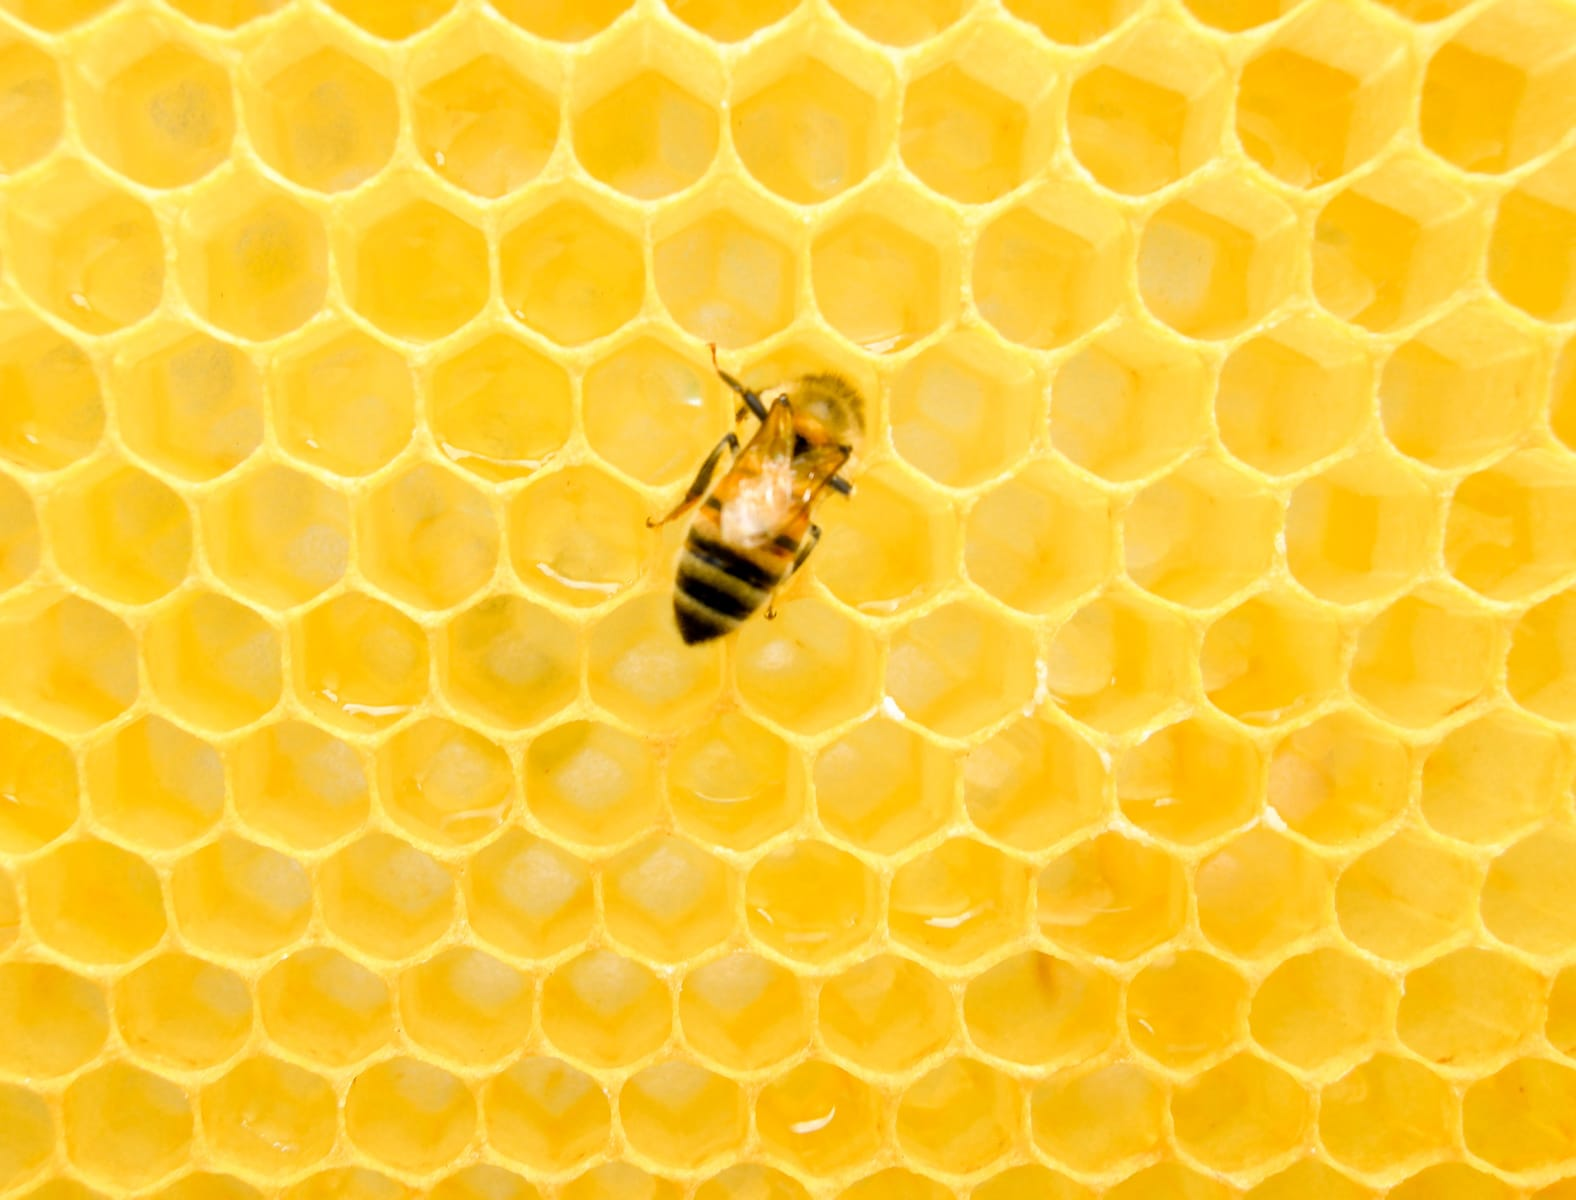 Beekeeping with a Honey bee on a honeycomb